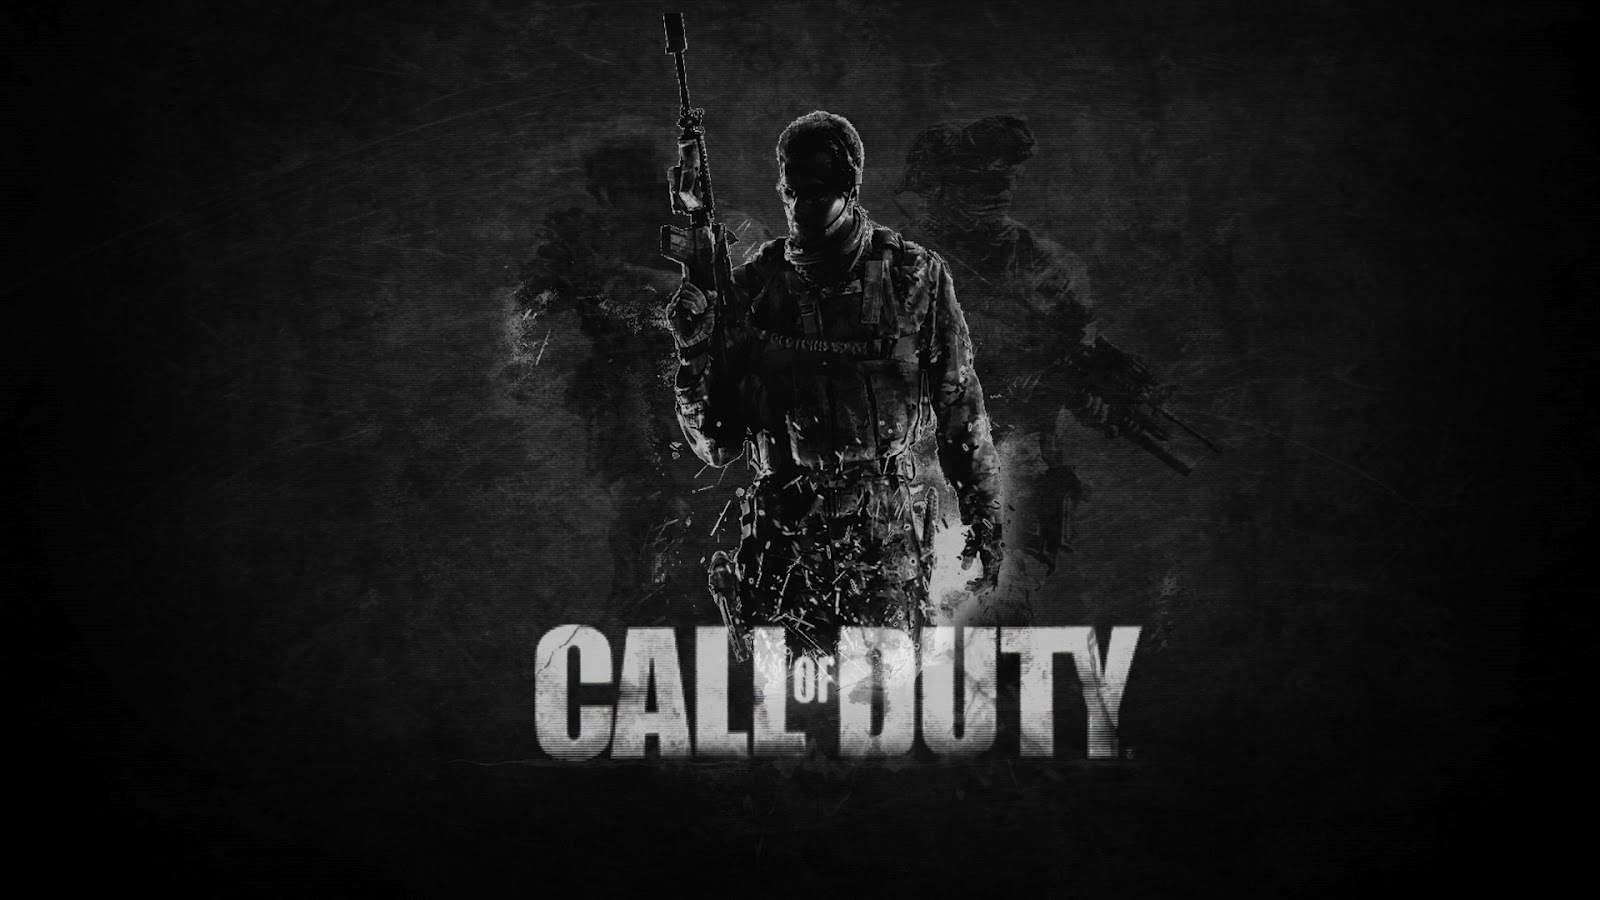 CALL OF DUTY HD WALLPAPERS 1920x1080 Hd Wallpapery 1600x900